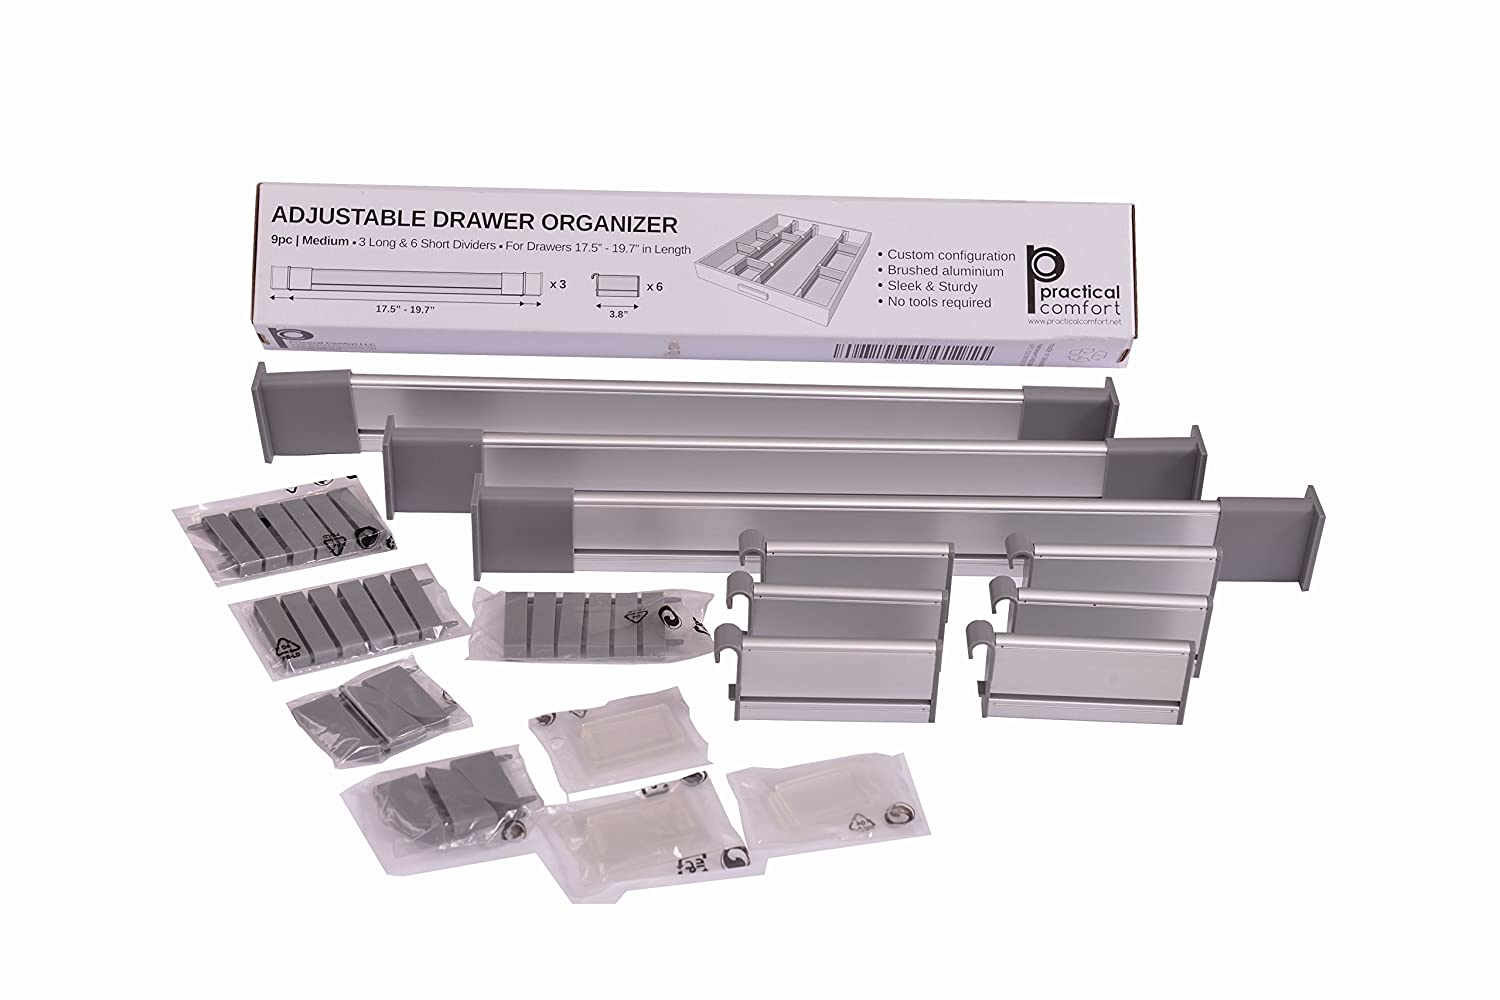 Amazon.com: Adjustable Drawer Organizer, Customizable, Elegant Aluminum,  For Clutter Free Kitchen, Junk Drawer, Office, Clinic (9 Dividers Set    Medium ...